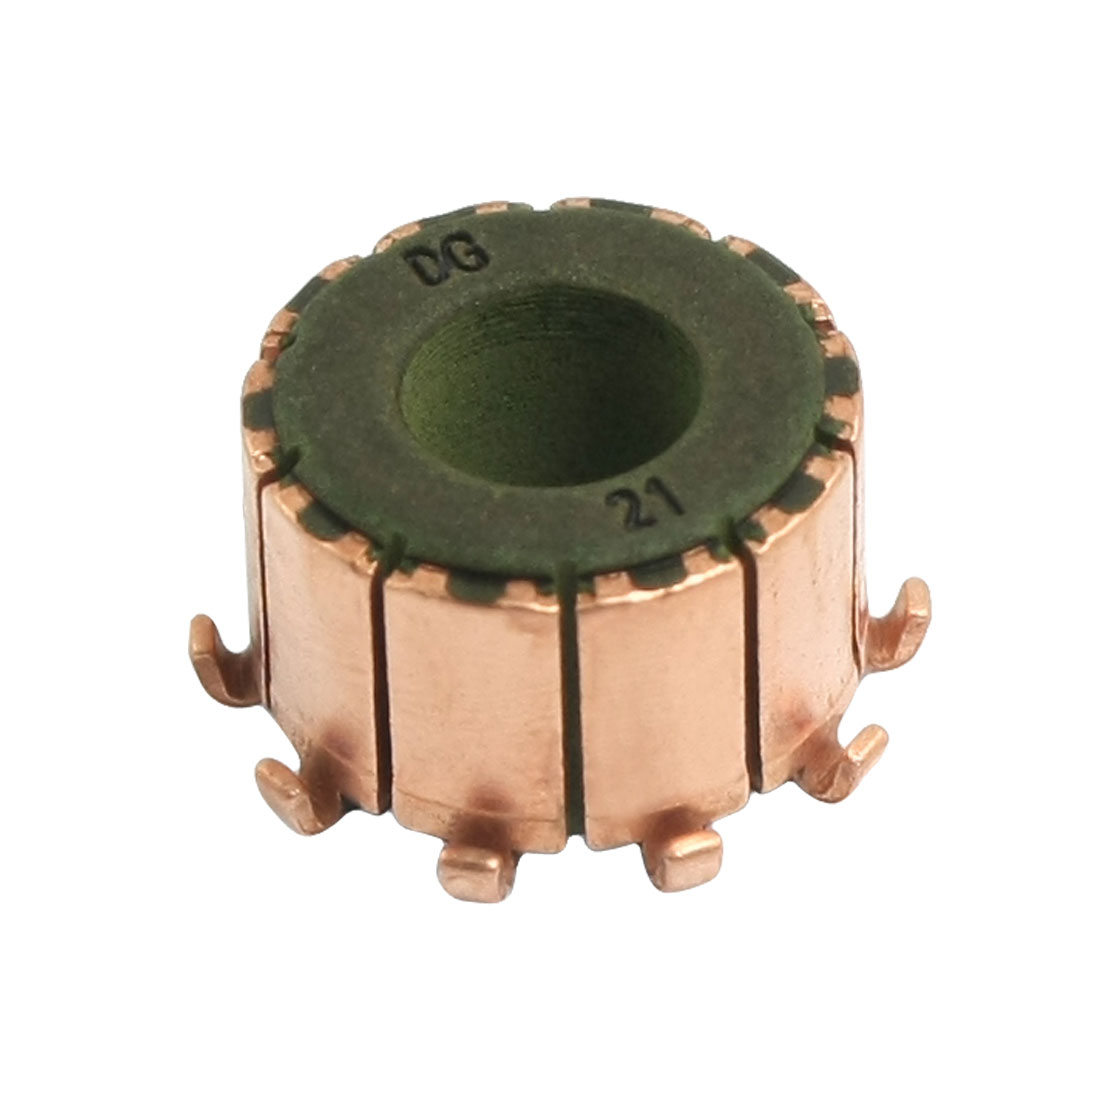 7.14mm x 15mm x 10mm 10 Gear Tooth Copper Shell Electric Motor Commutator